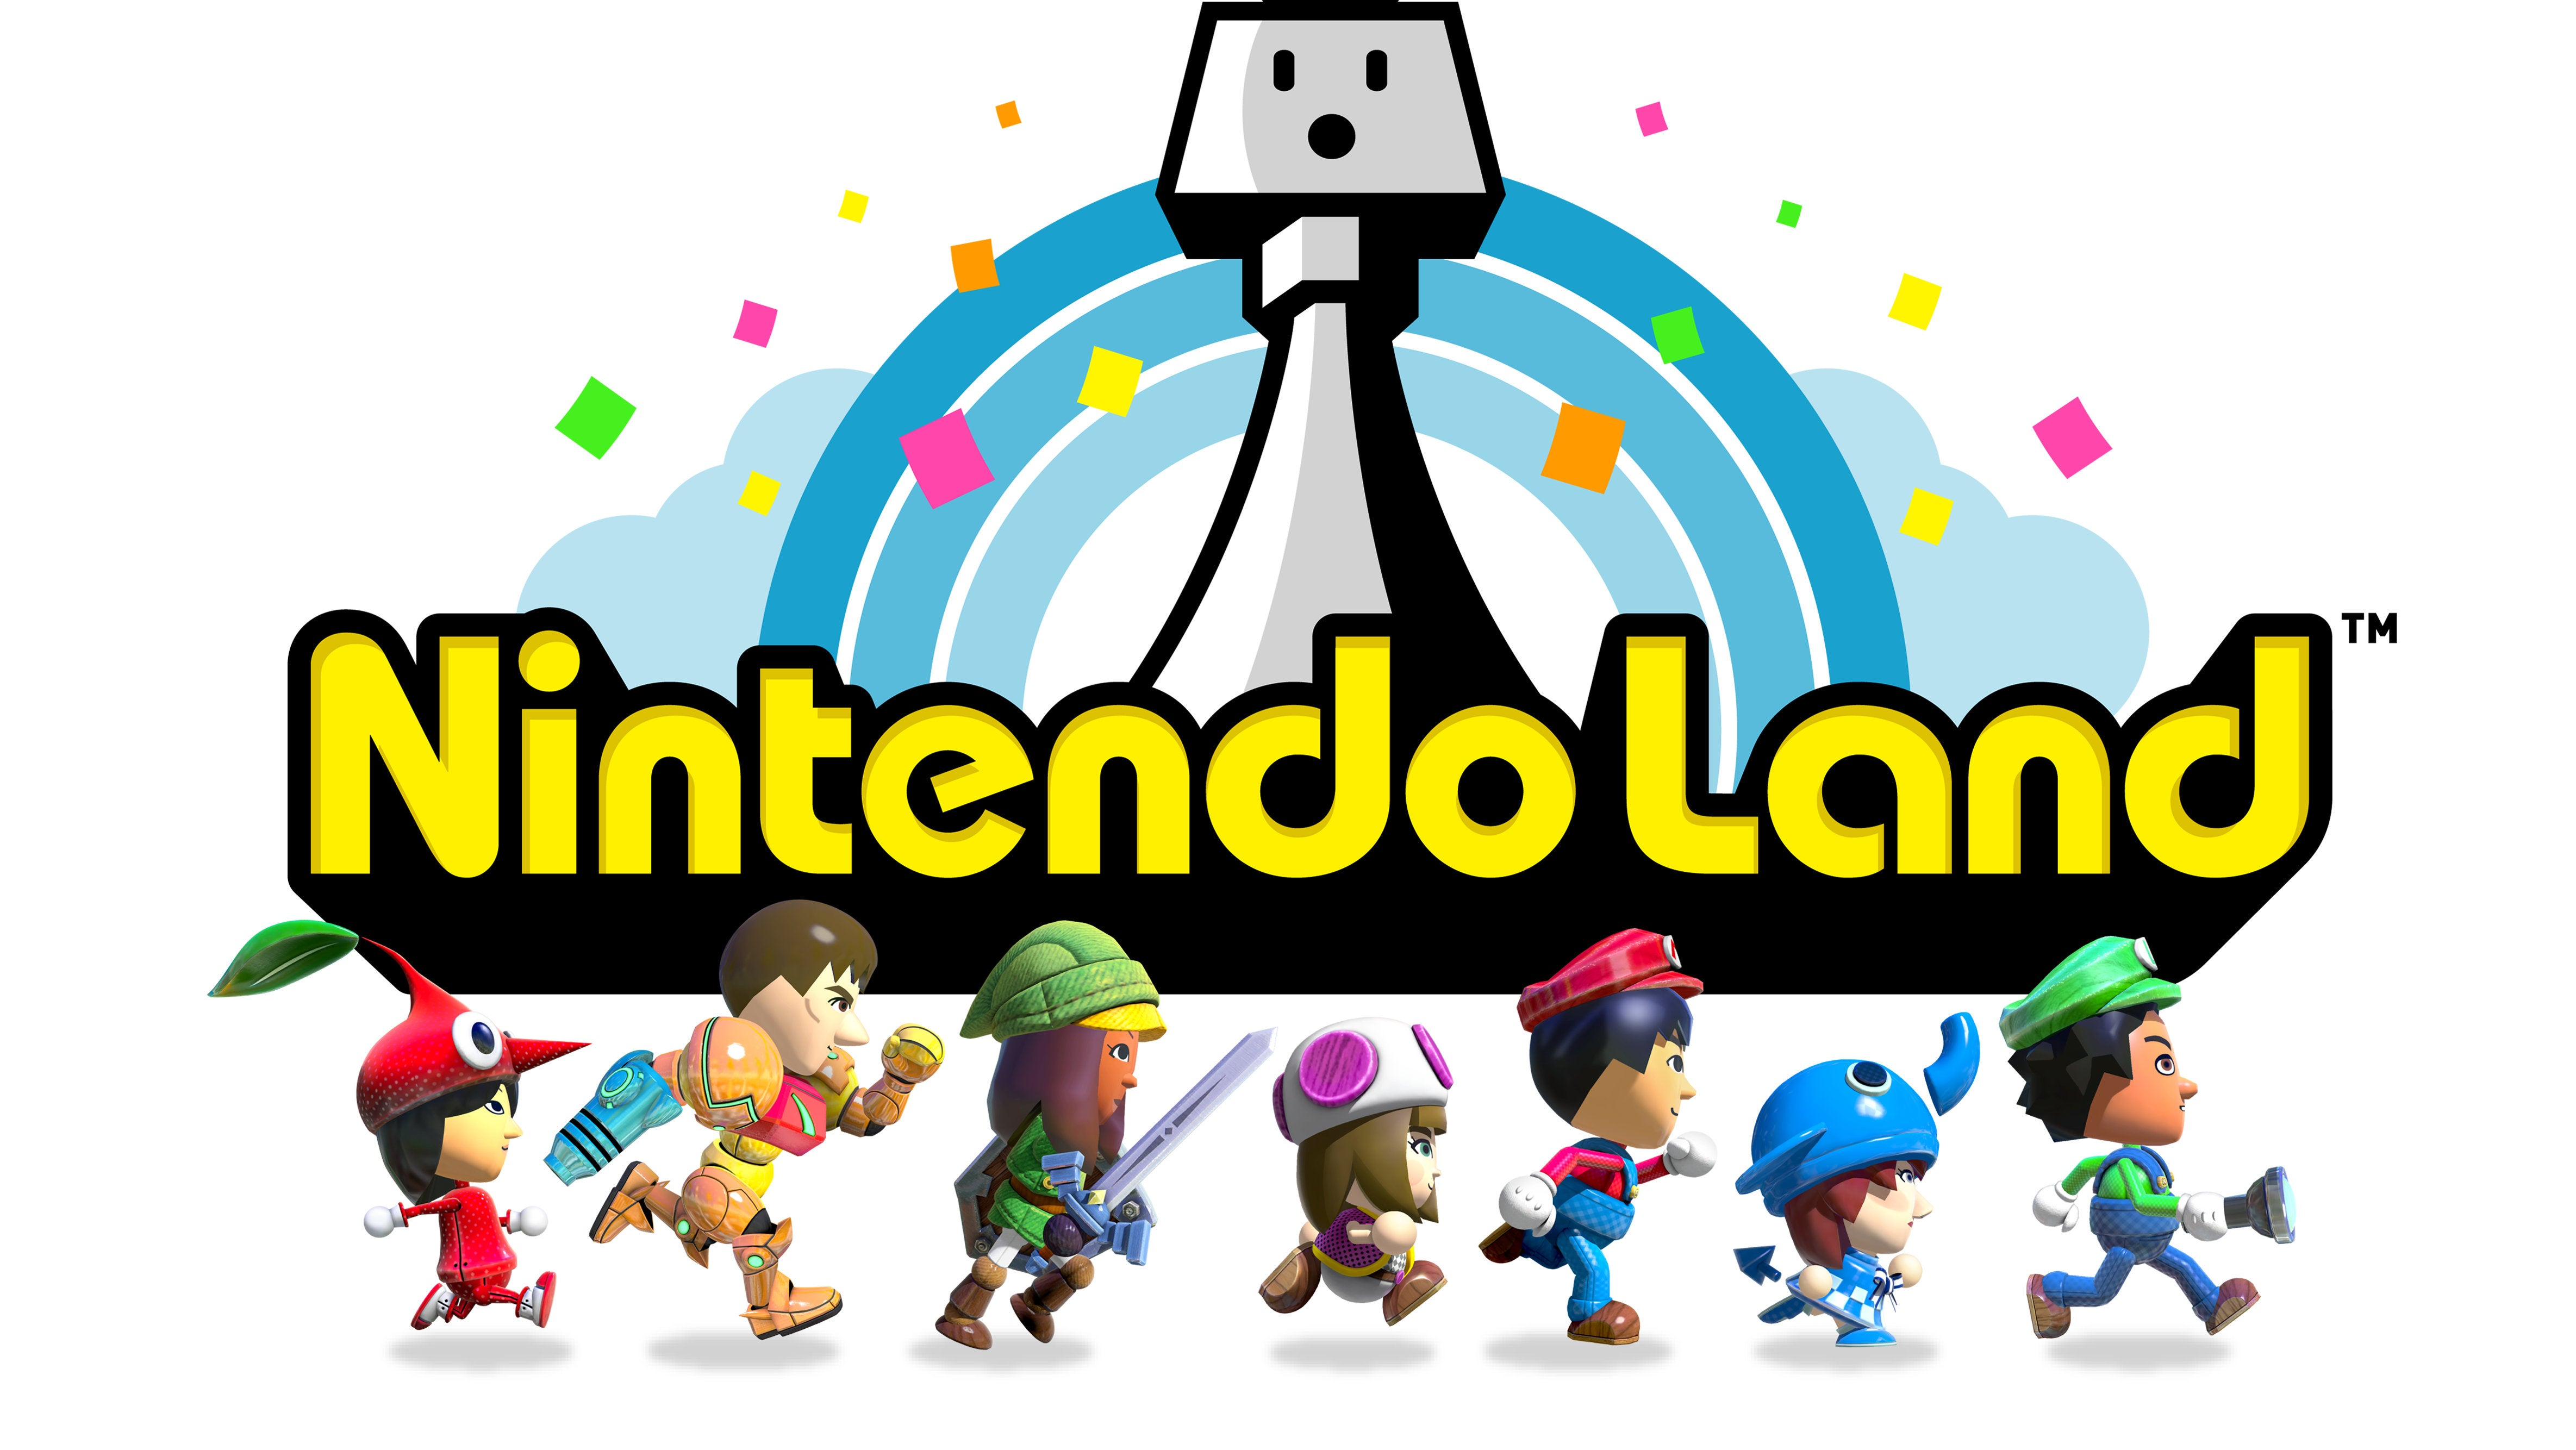 nintendo land is much more than a glorified instruction nintendo 3ds instruction manual nintendo entertainment system instruction manual